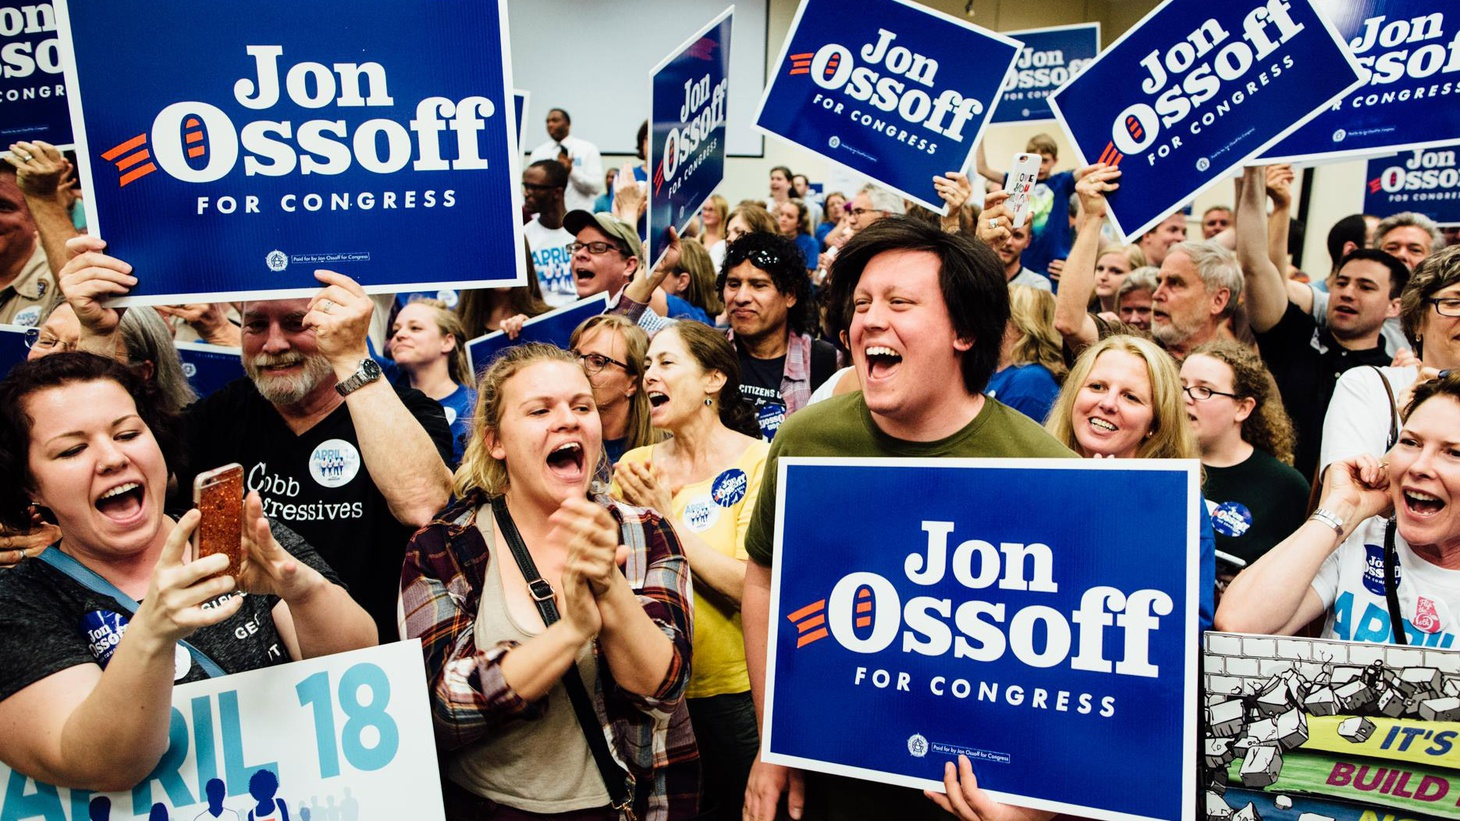 Tom Price gave up his congressional seat in the Atlanta suburbs to become President Trump's Secretary of Health and Human services. Yesterday, a 30-year-old novice Democrat,  Jon Ossoff , got 48% of the primary vote to replace him. But there will be a runoff against Republican  Karen Handel , formerly Georgia's Secretary of State.